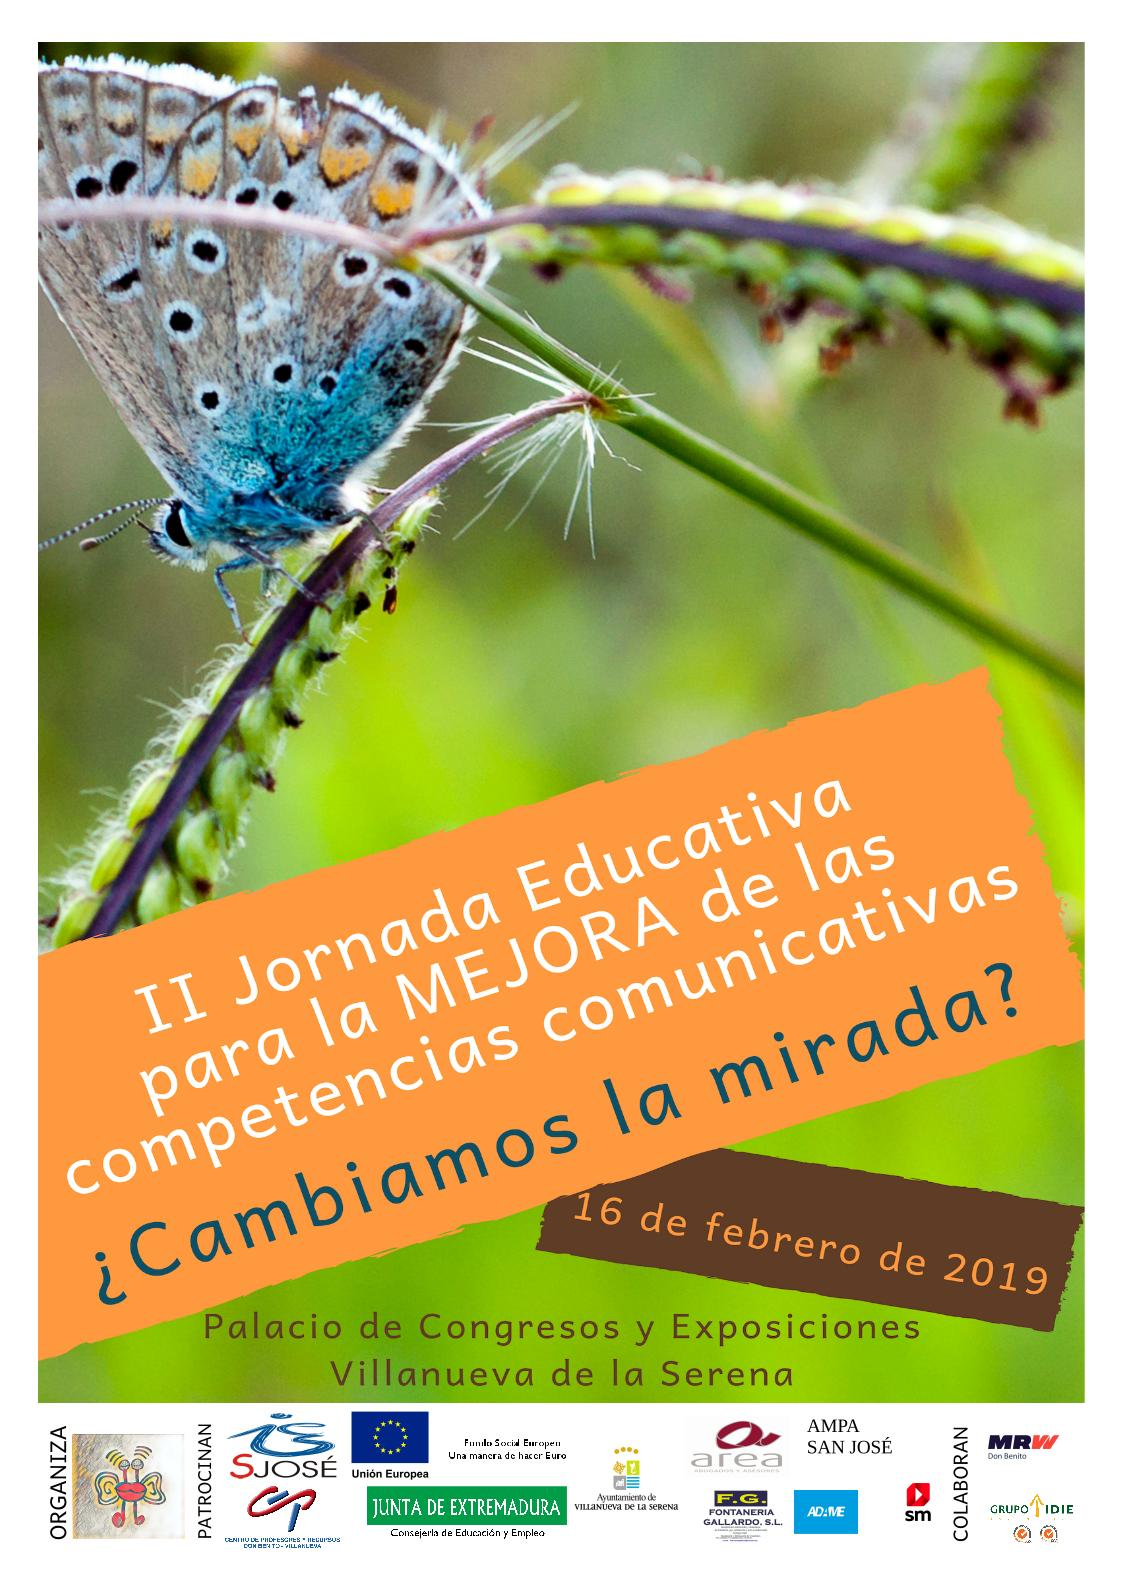 Jornadas Competencias Educativas